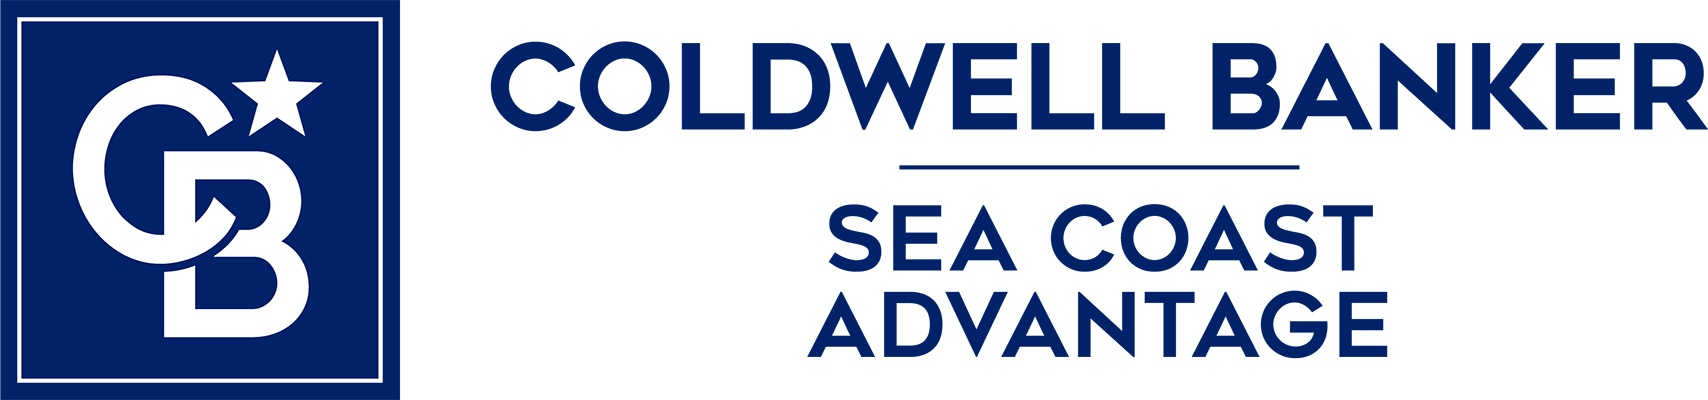 Billy Baker - Coldwell Banker Sea Coast Advantage Realty